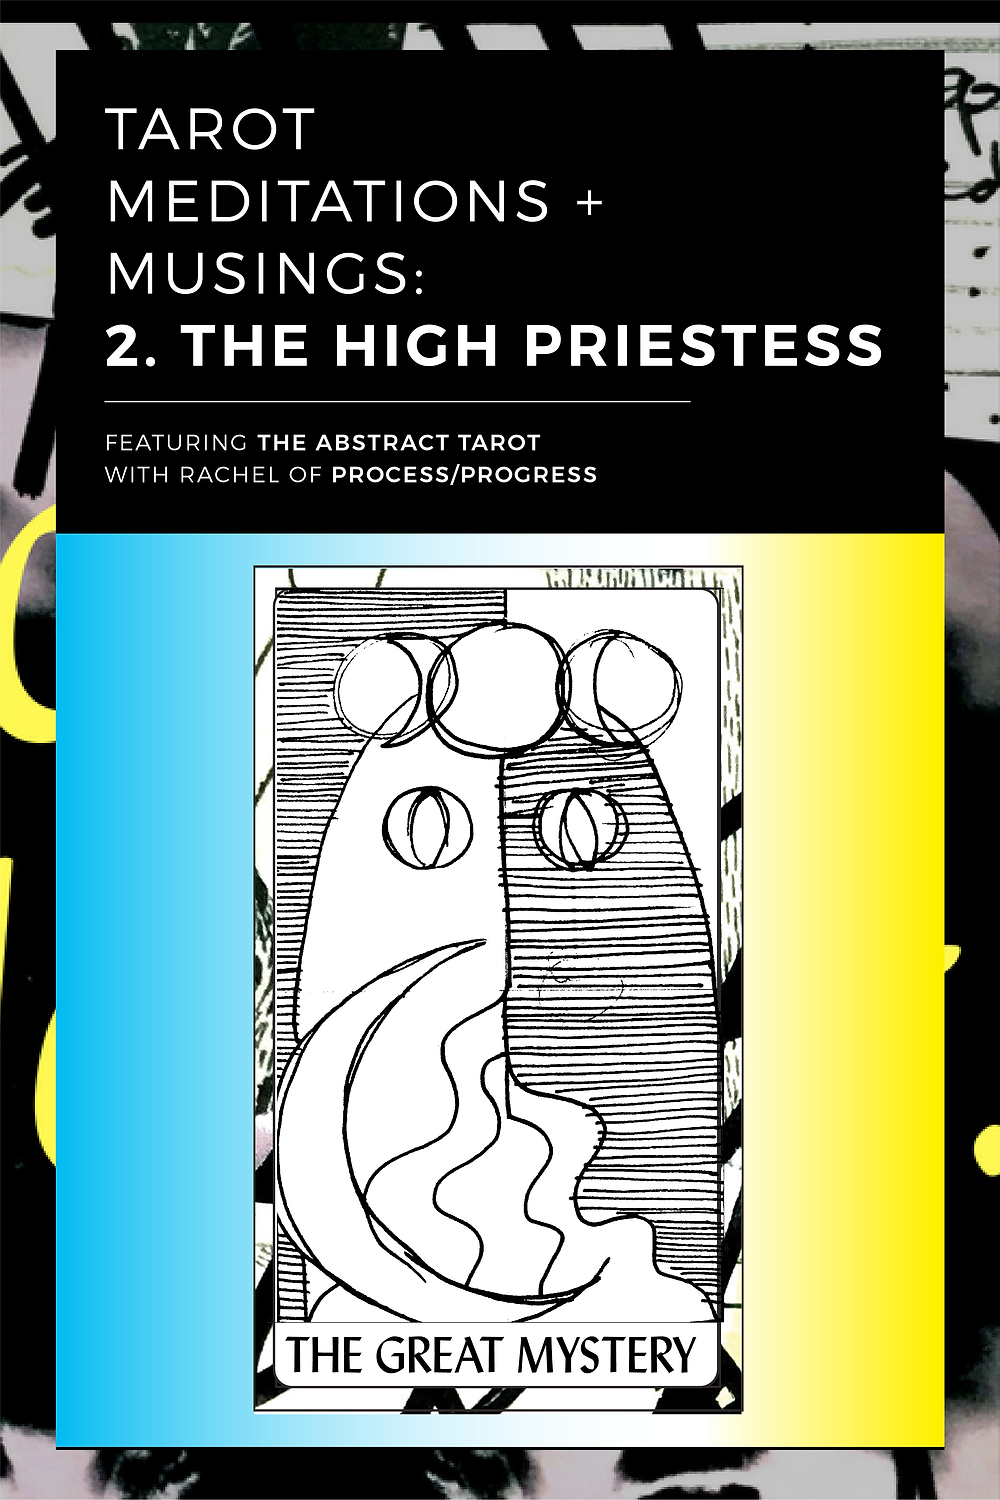 Tarot meditations and musings: The High Priestess.